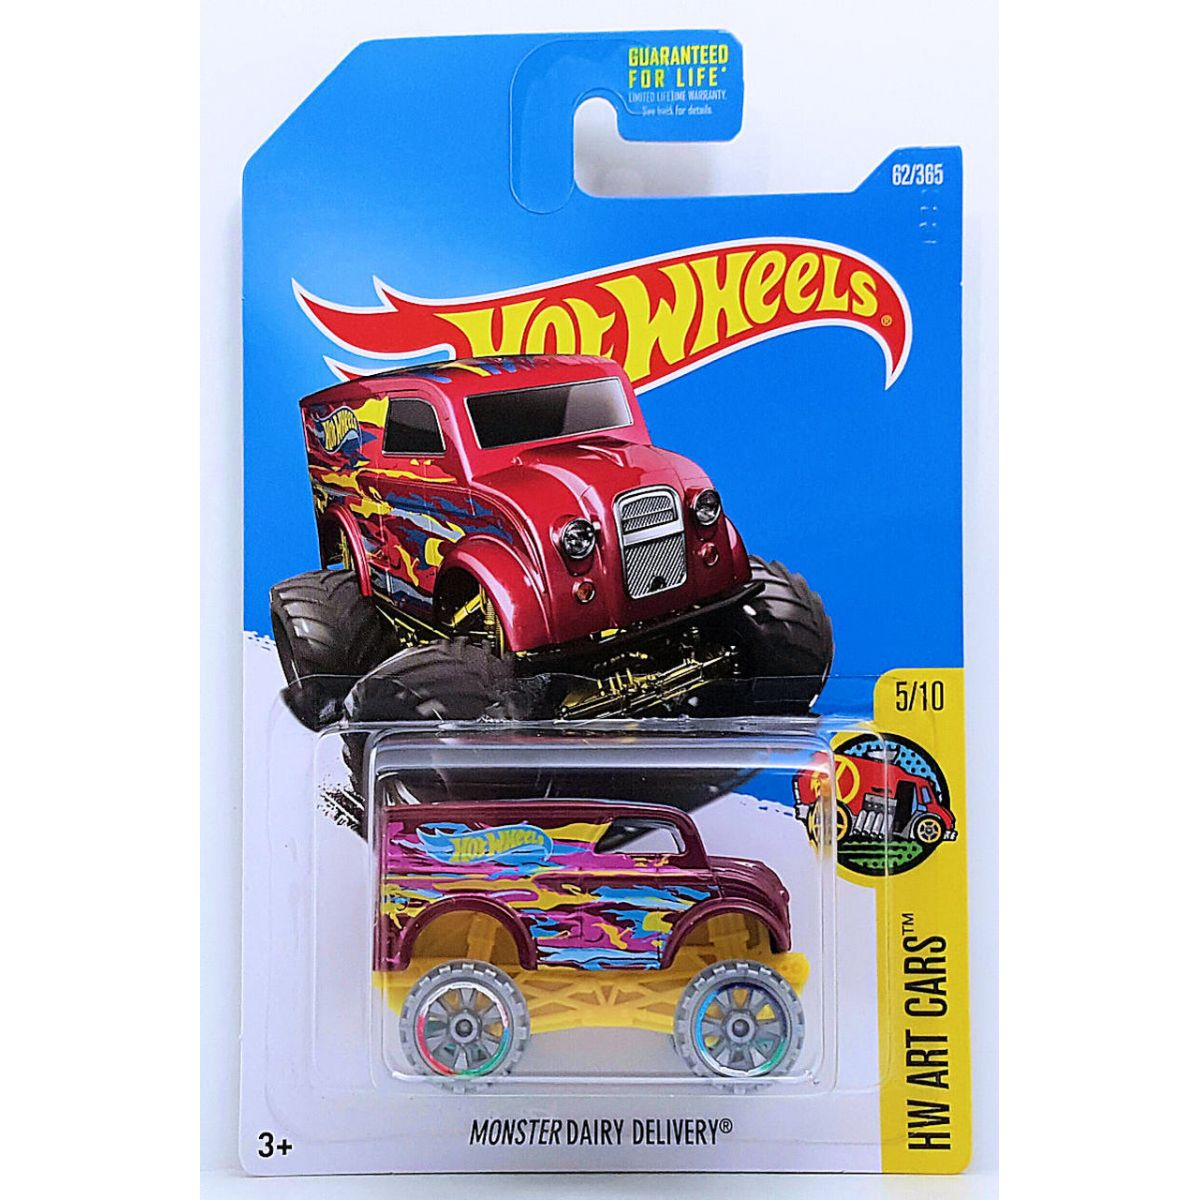 Monster Dairy Delivery Vermelho - Hot Wheels